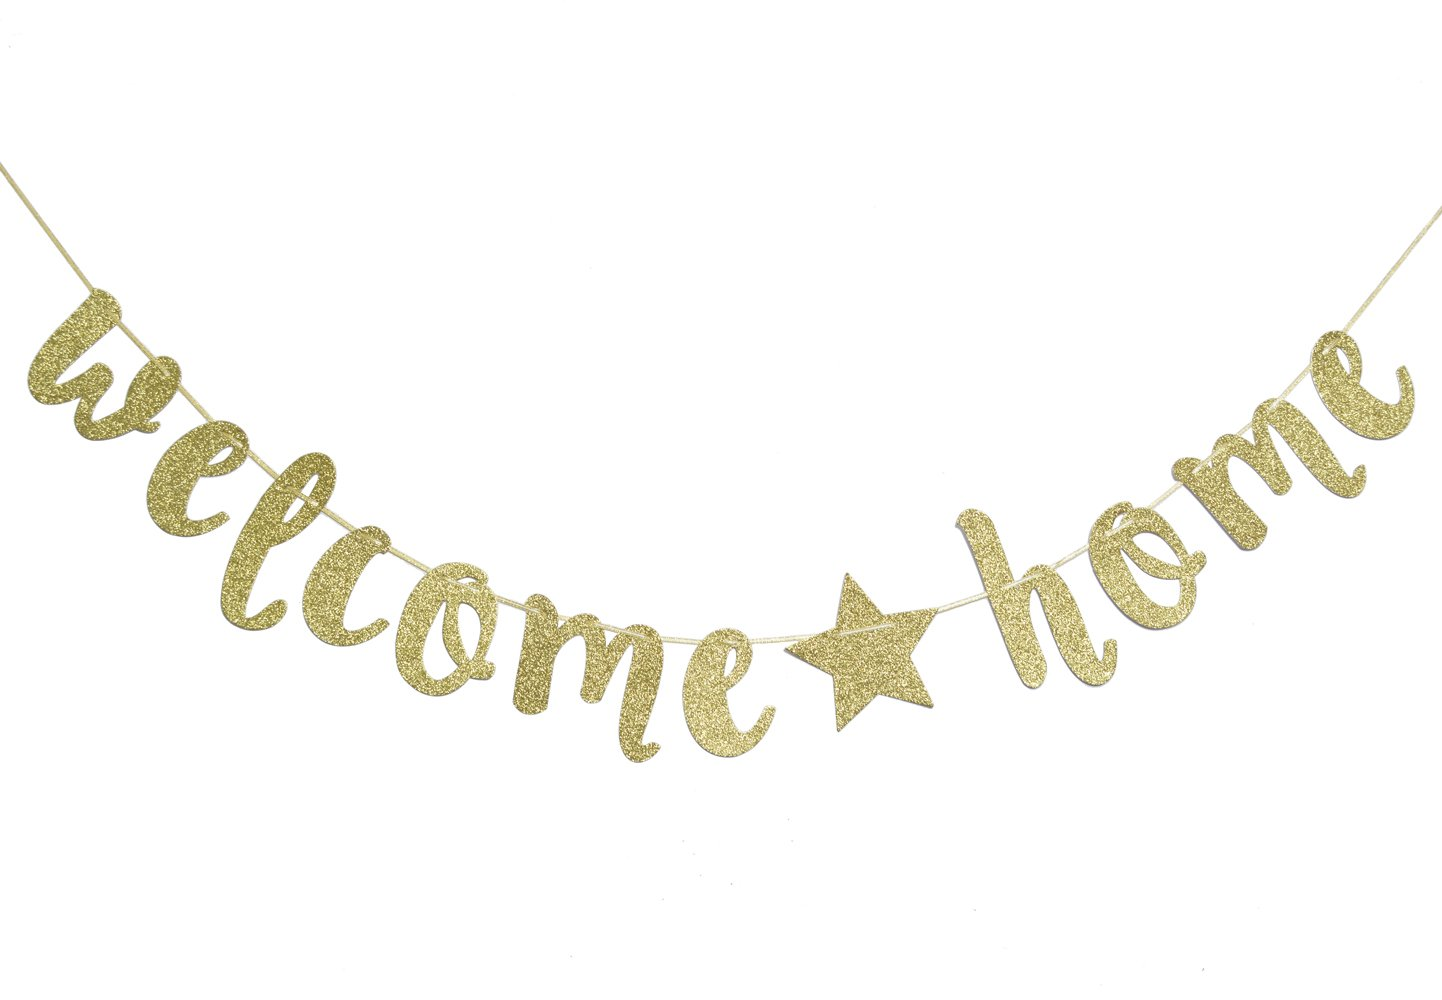 Welcome Home Gold Glitter Banner for Housewarming Patriotic Military Decoration Family Party Supplies Cursive Bunting Photo Booth Props Sign (Gold)